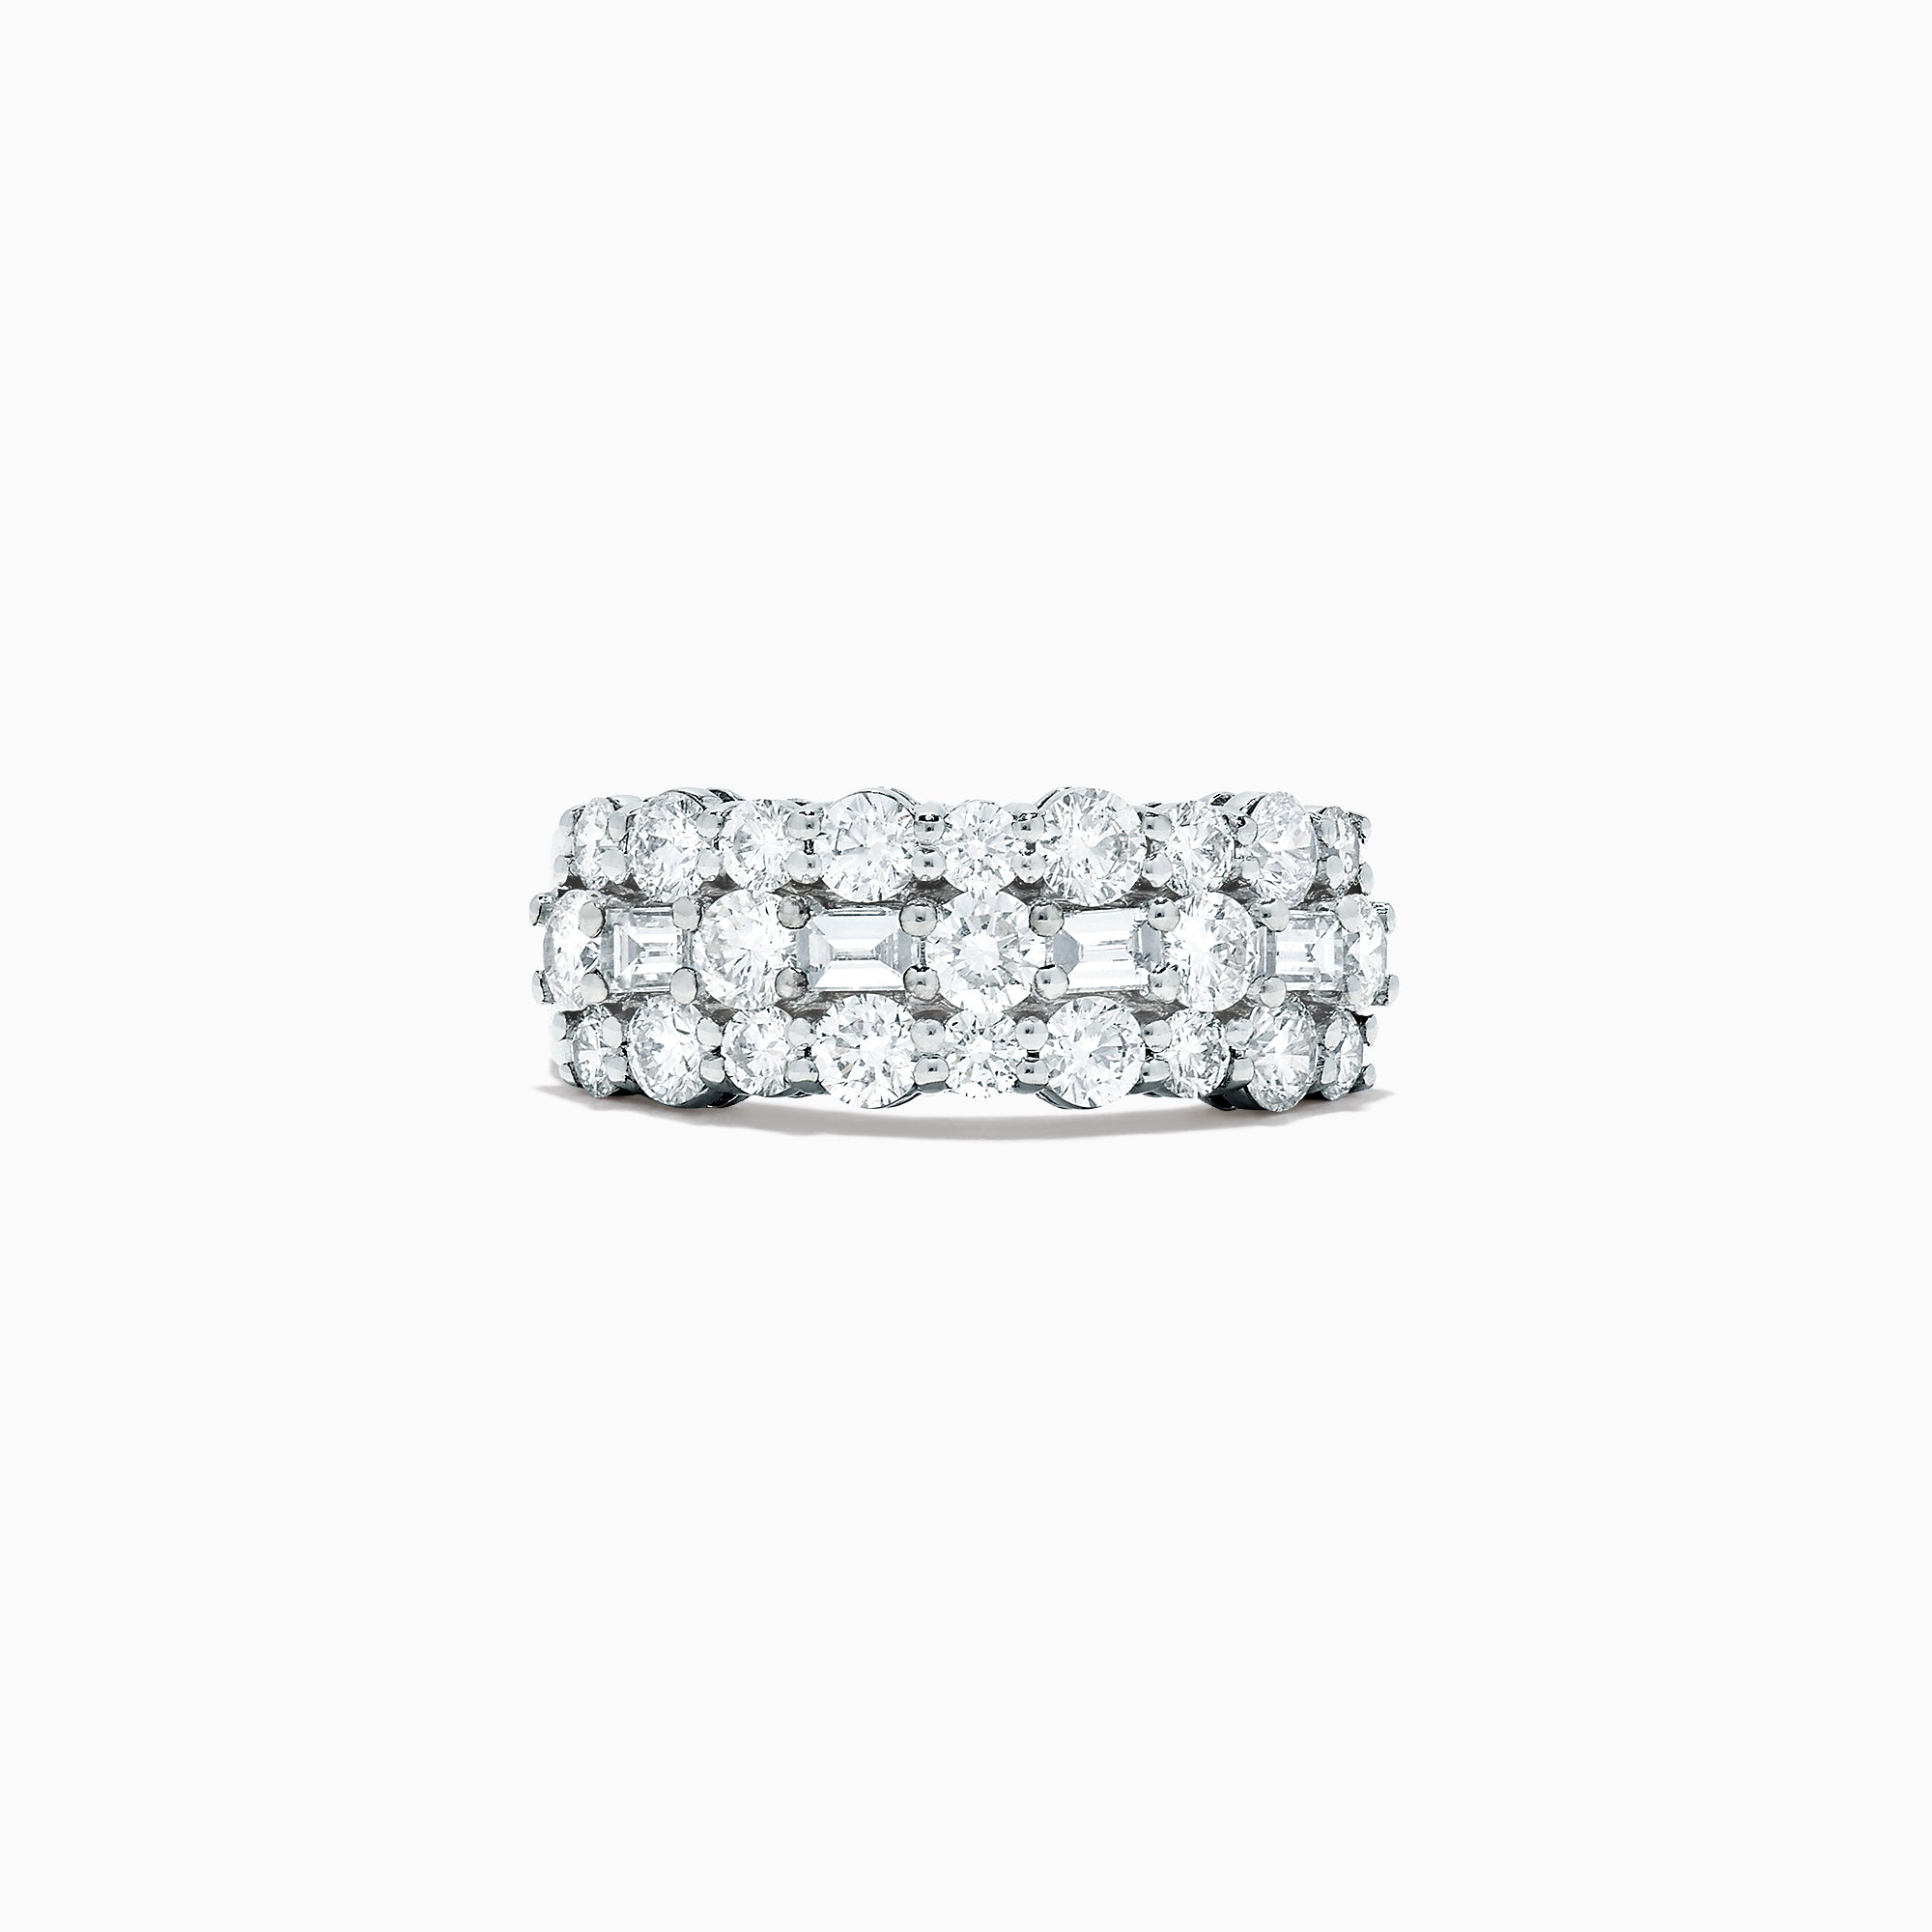 Effy Classique 14K White Gold Diamond Ring, 2.07 TCW